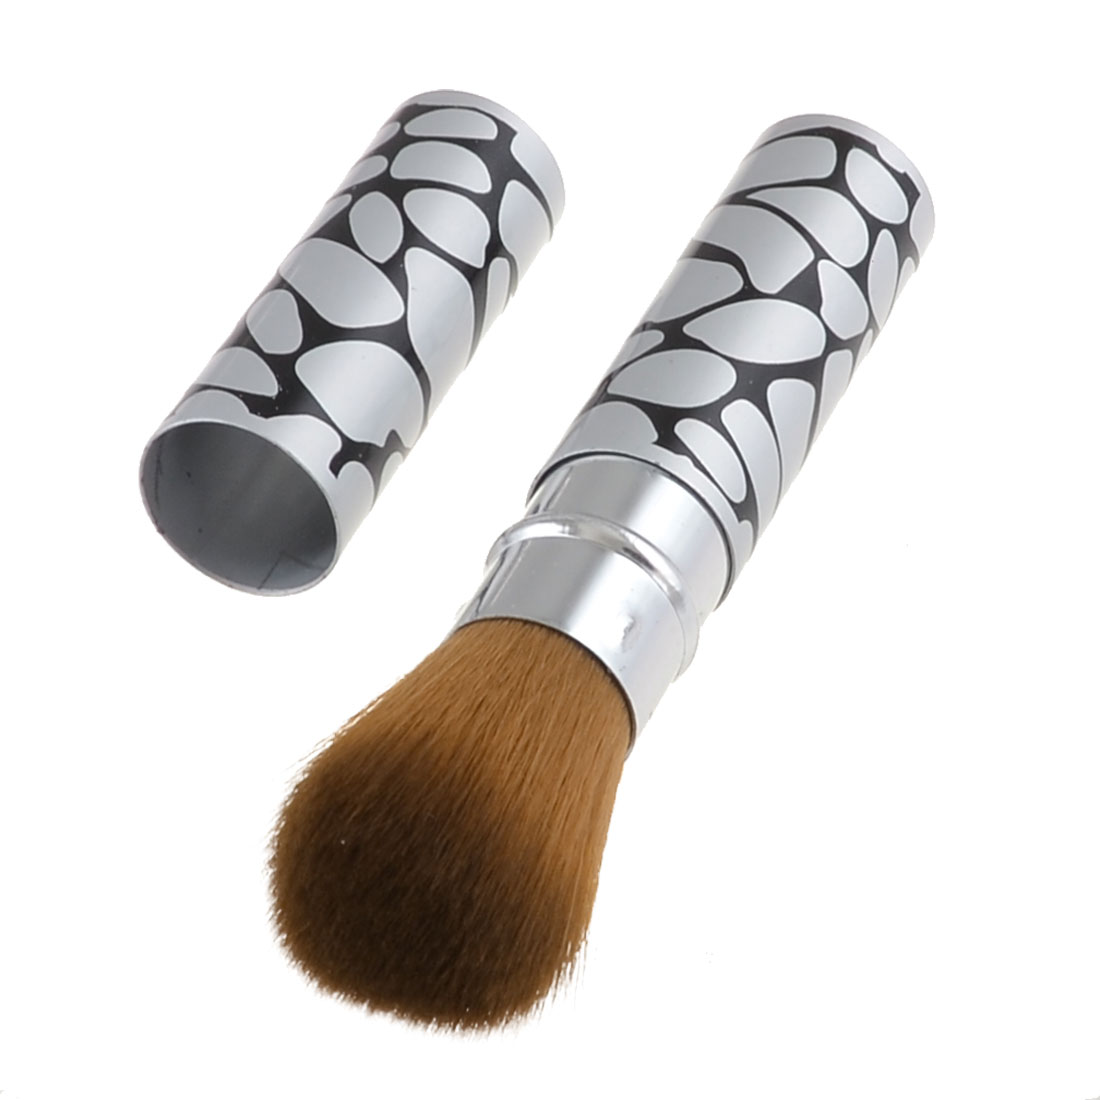 Block Stone Print Silver Tone Alloy Handle Cosmetic Retractable Brush